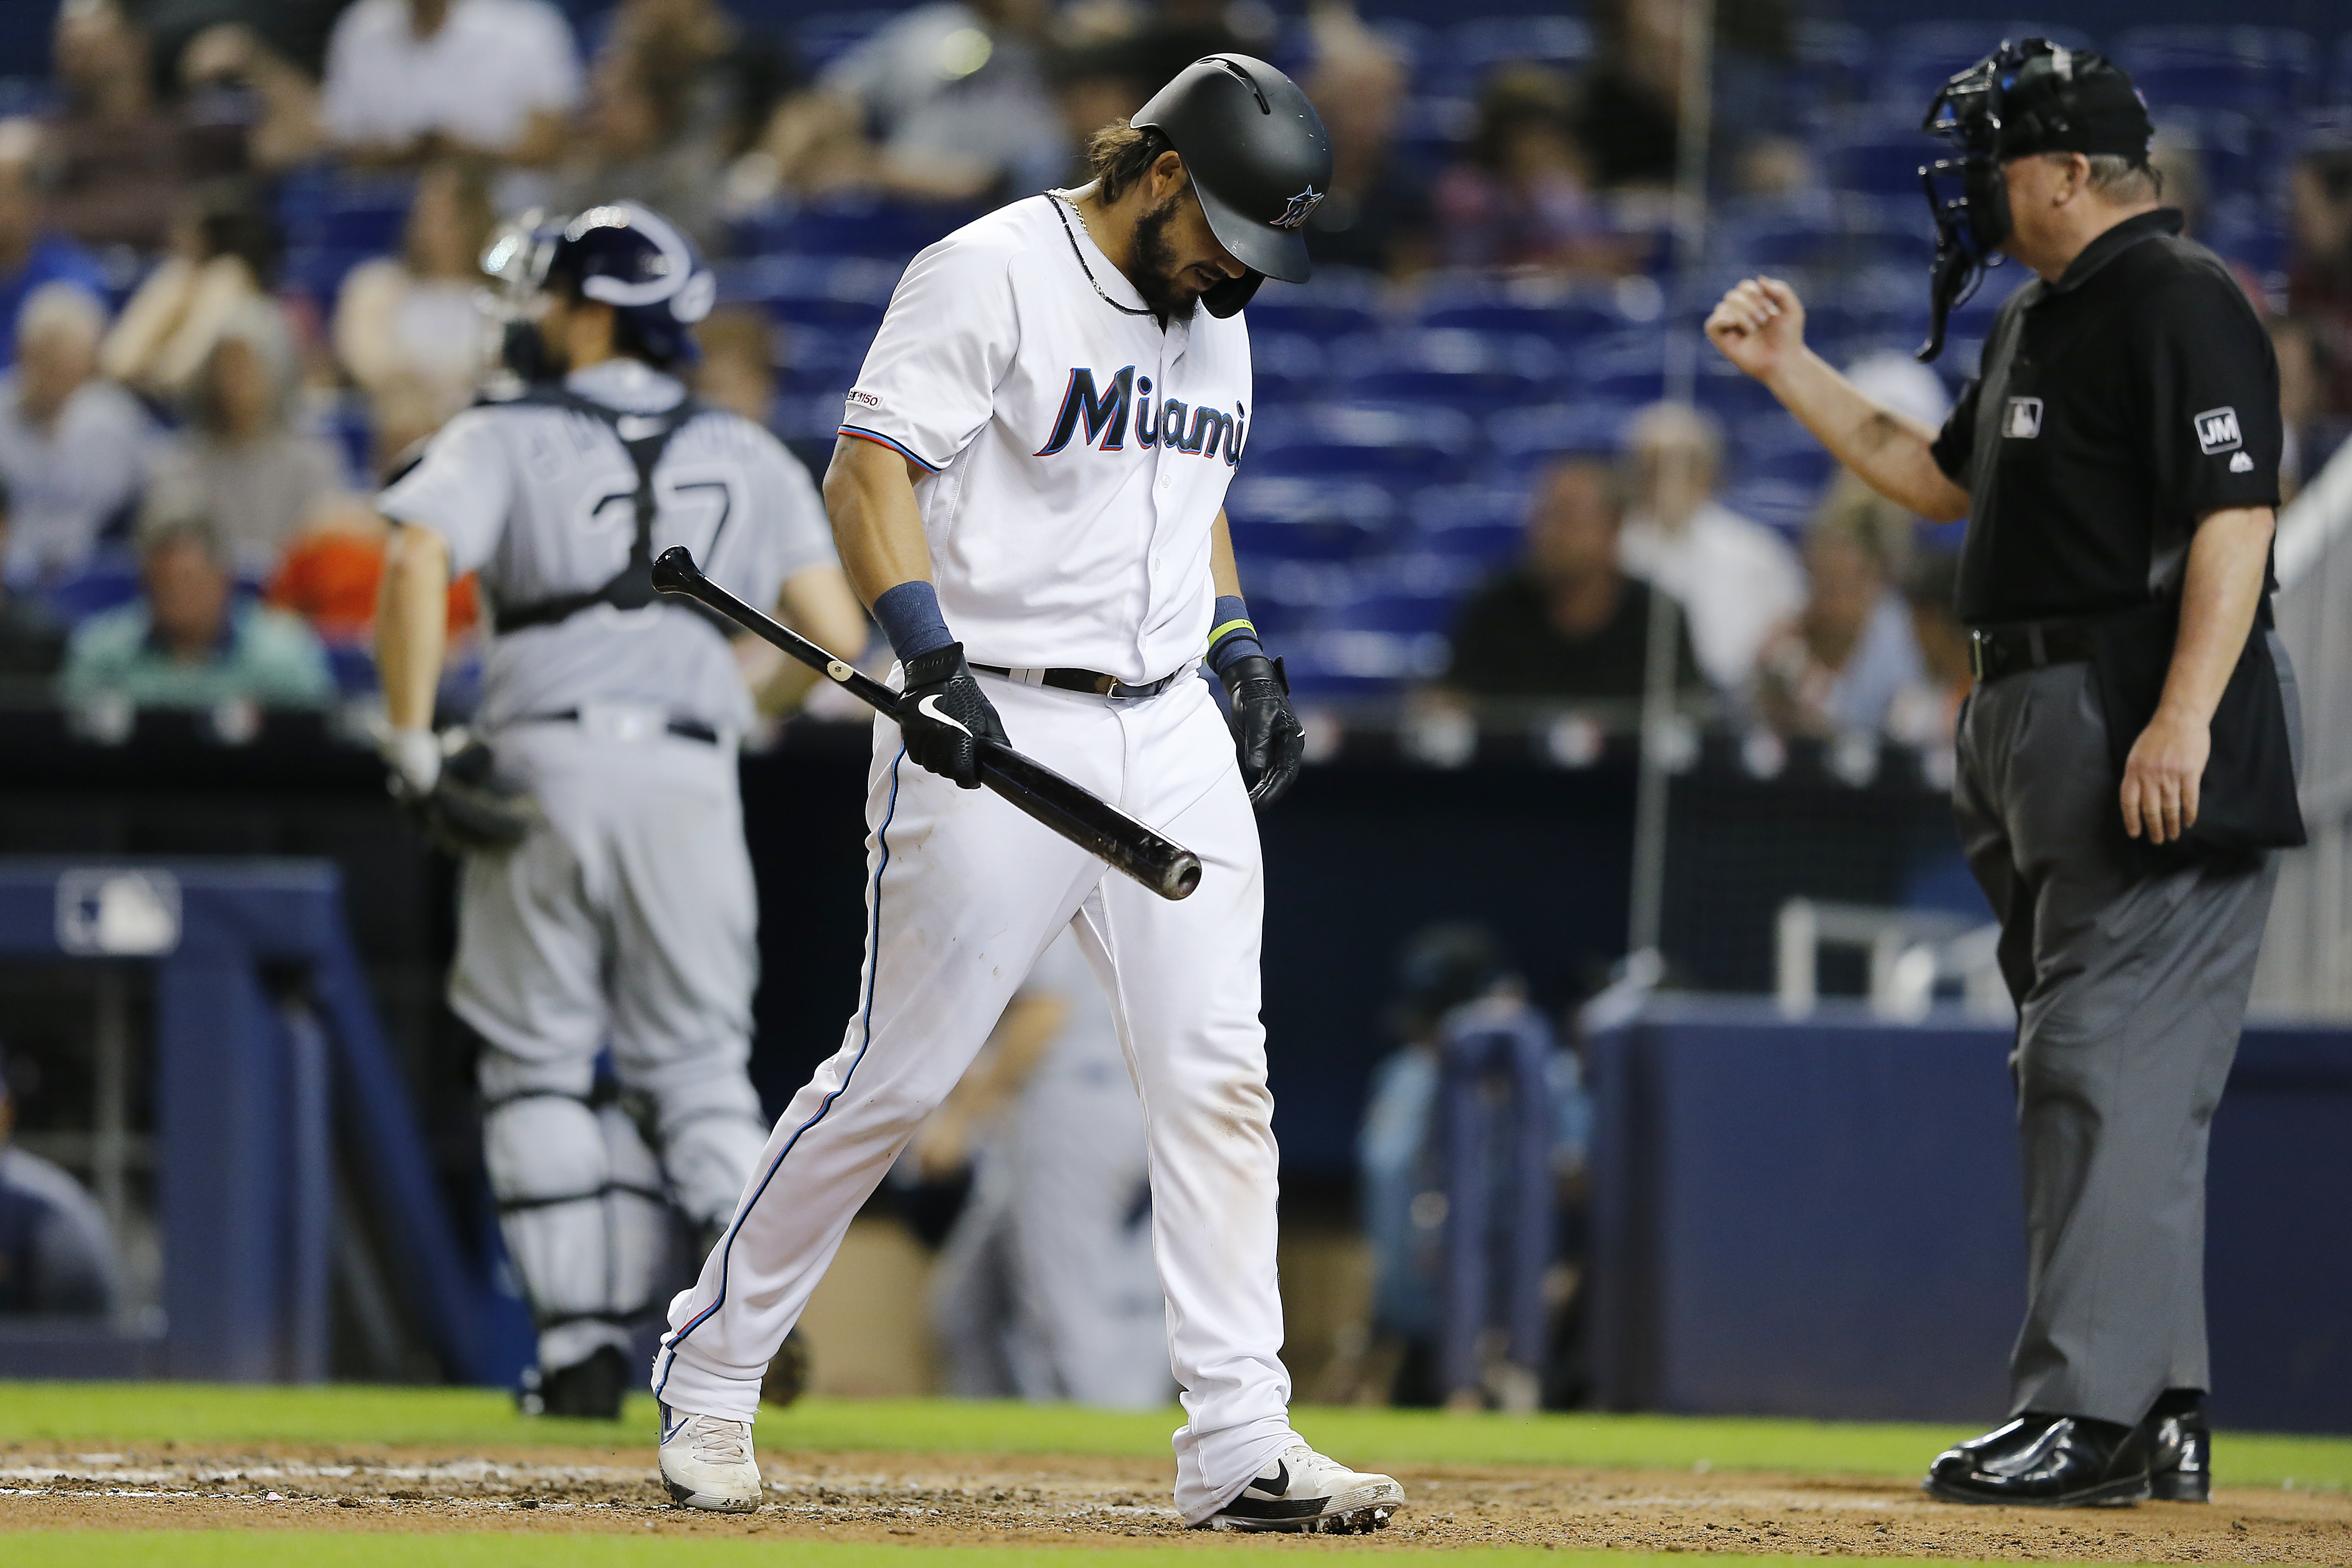 The Marlins are even worse than we thought